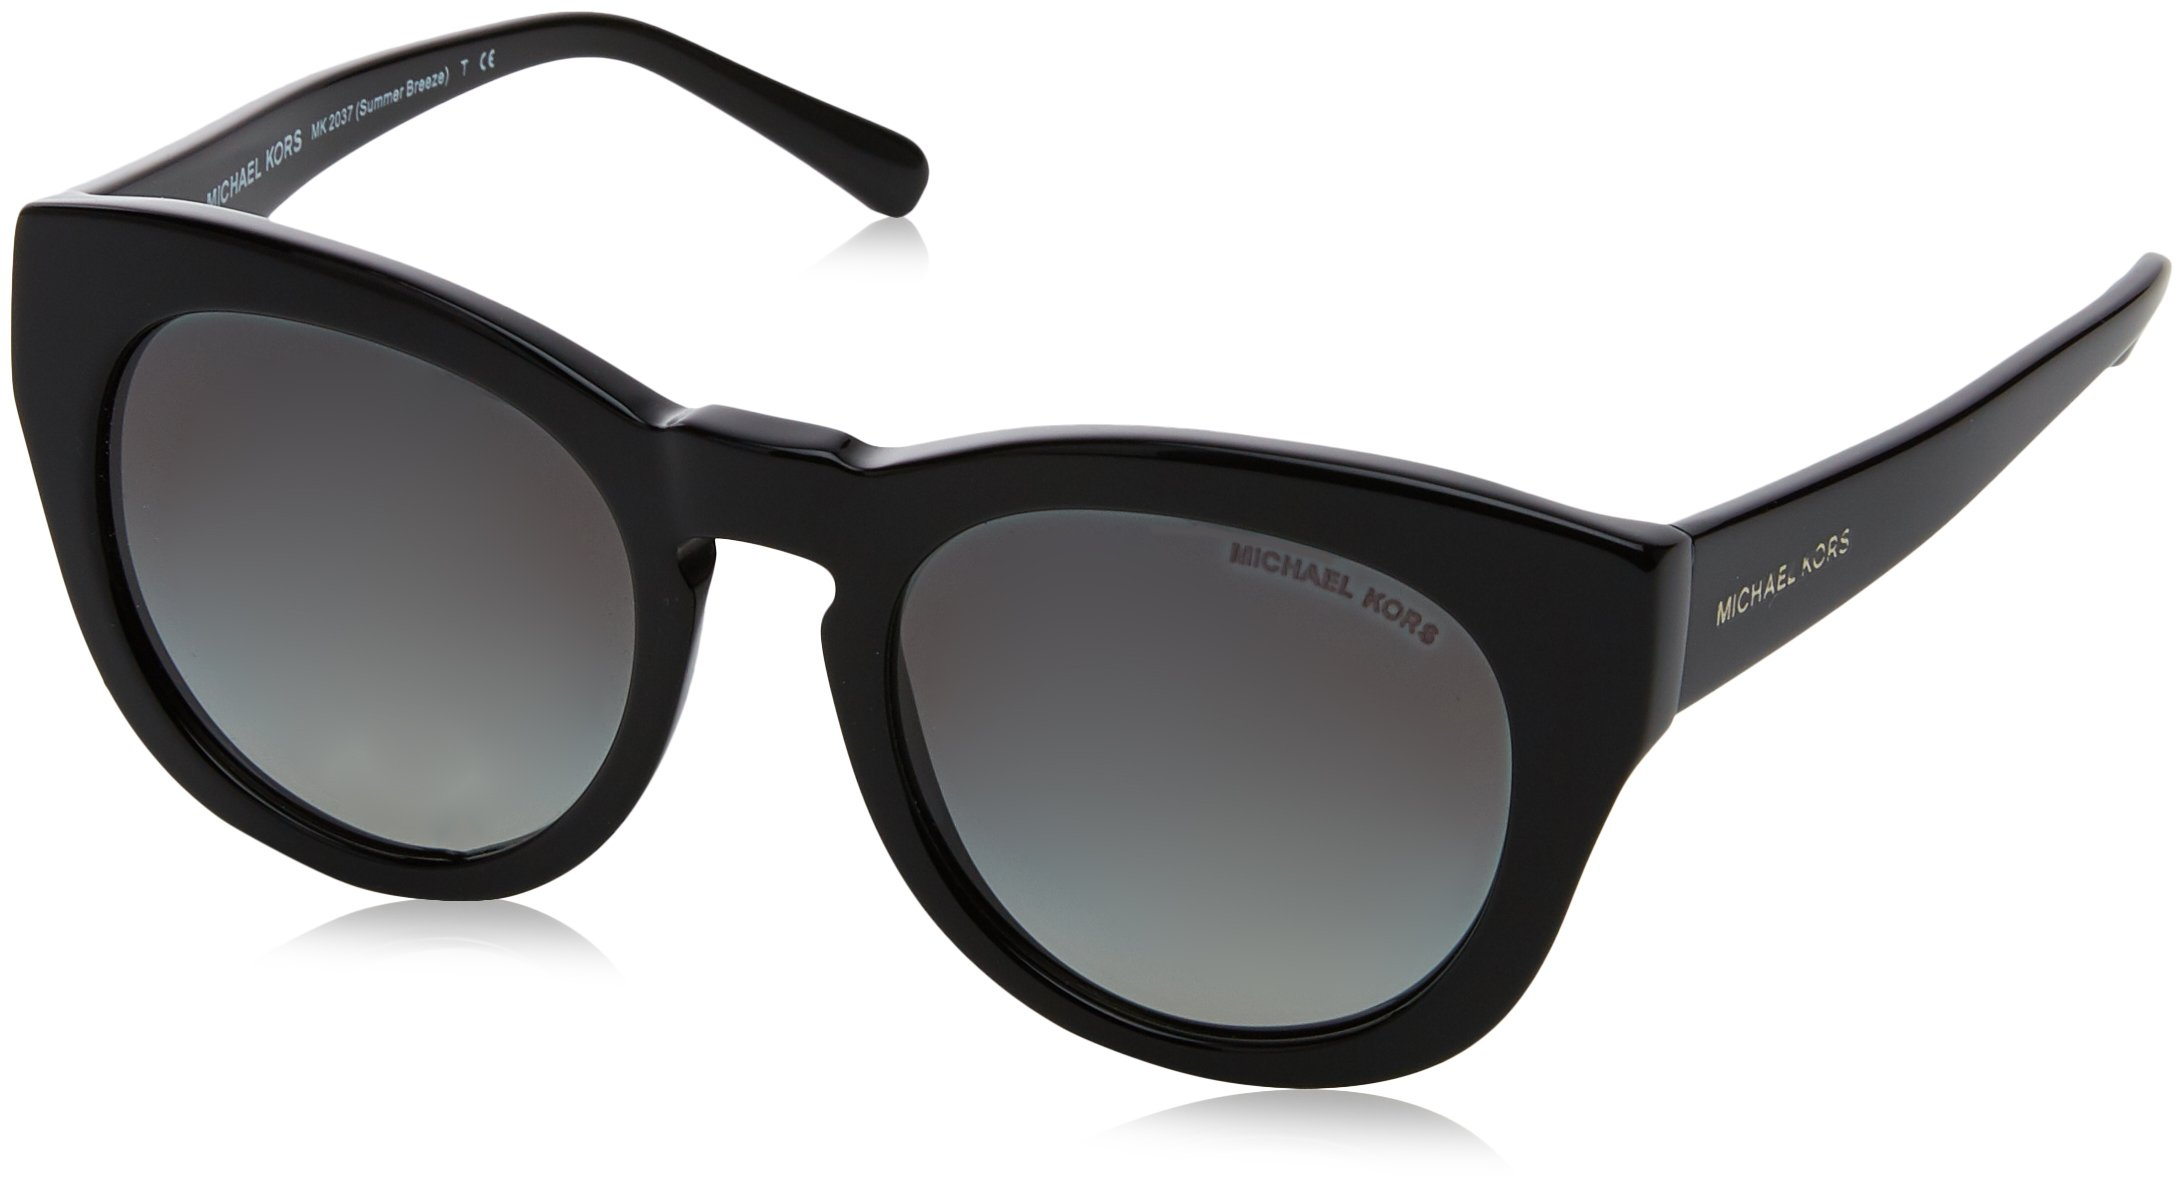 Michael Kors Summer breeze MK2037 317711 (Shiny Black with Grey Gradient lenses)